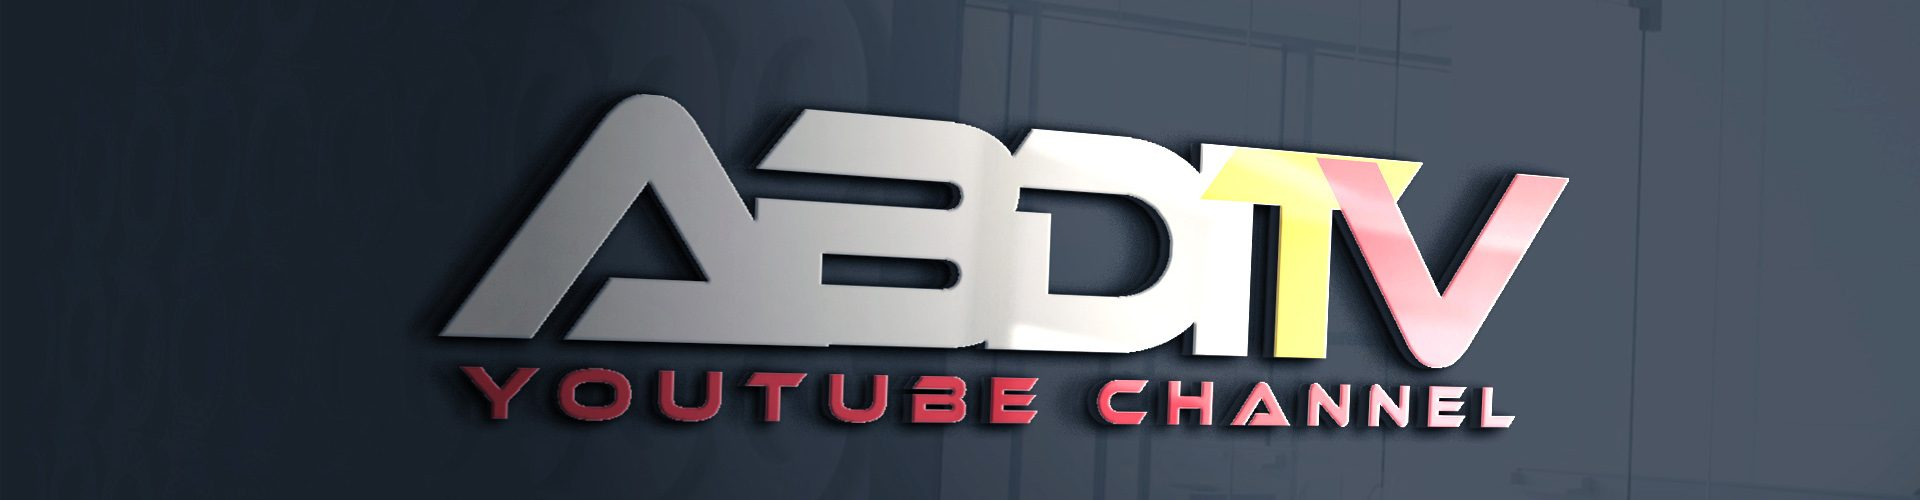 ABDITV GROUP